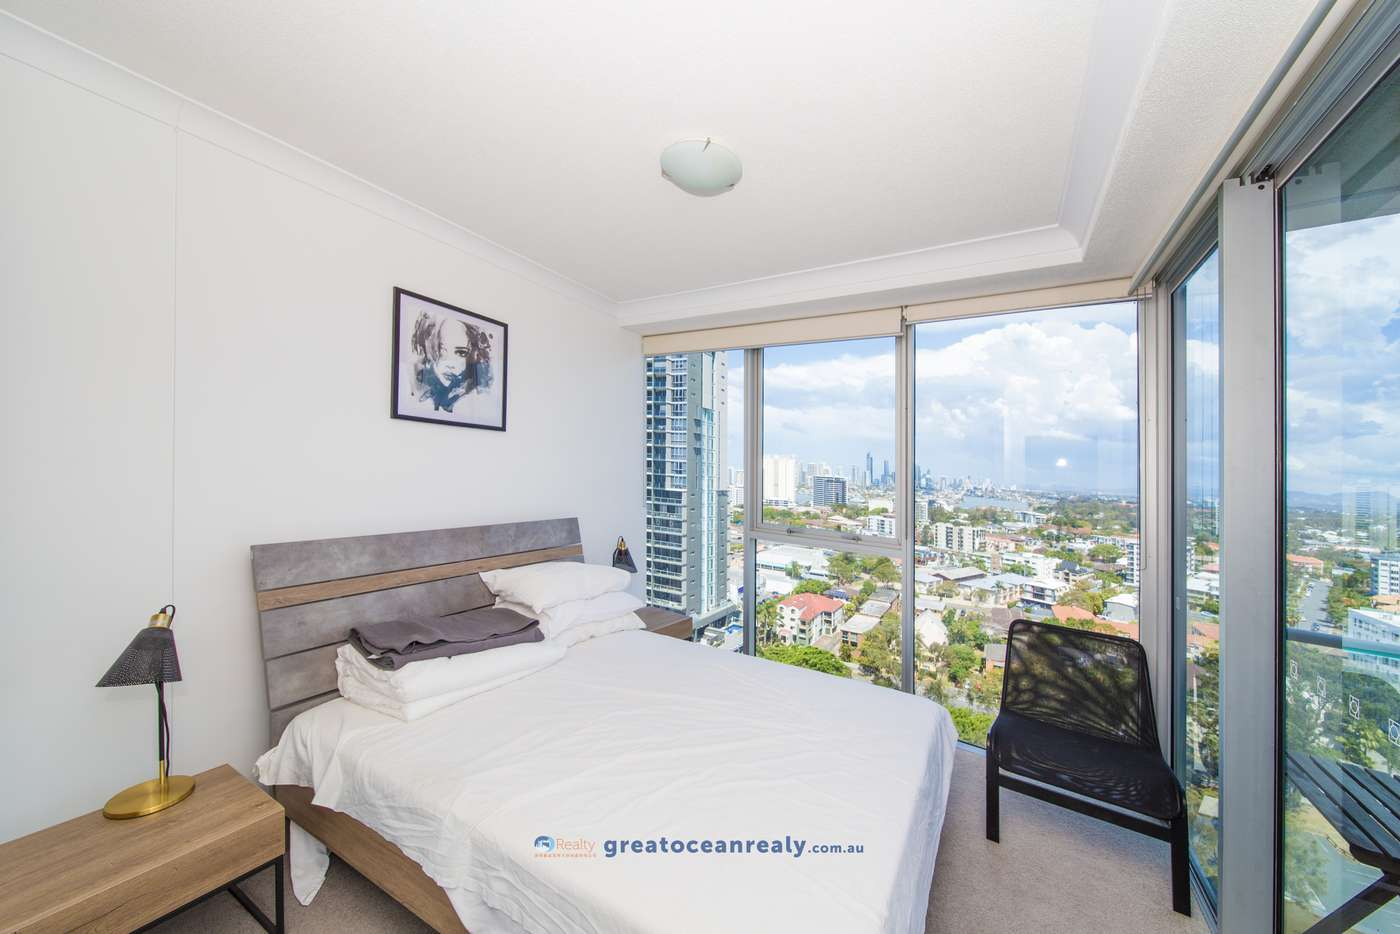 Fifth view of Homely apartment listing, 21506/5 Lawson street, Southport QLD 4215